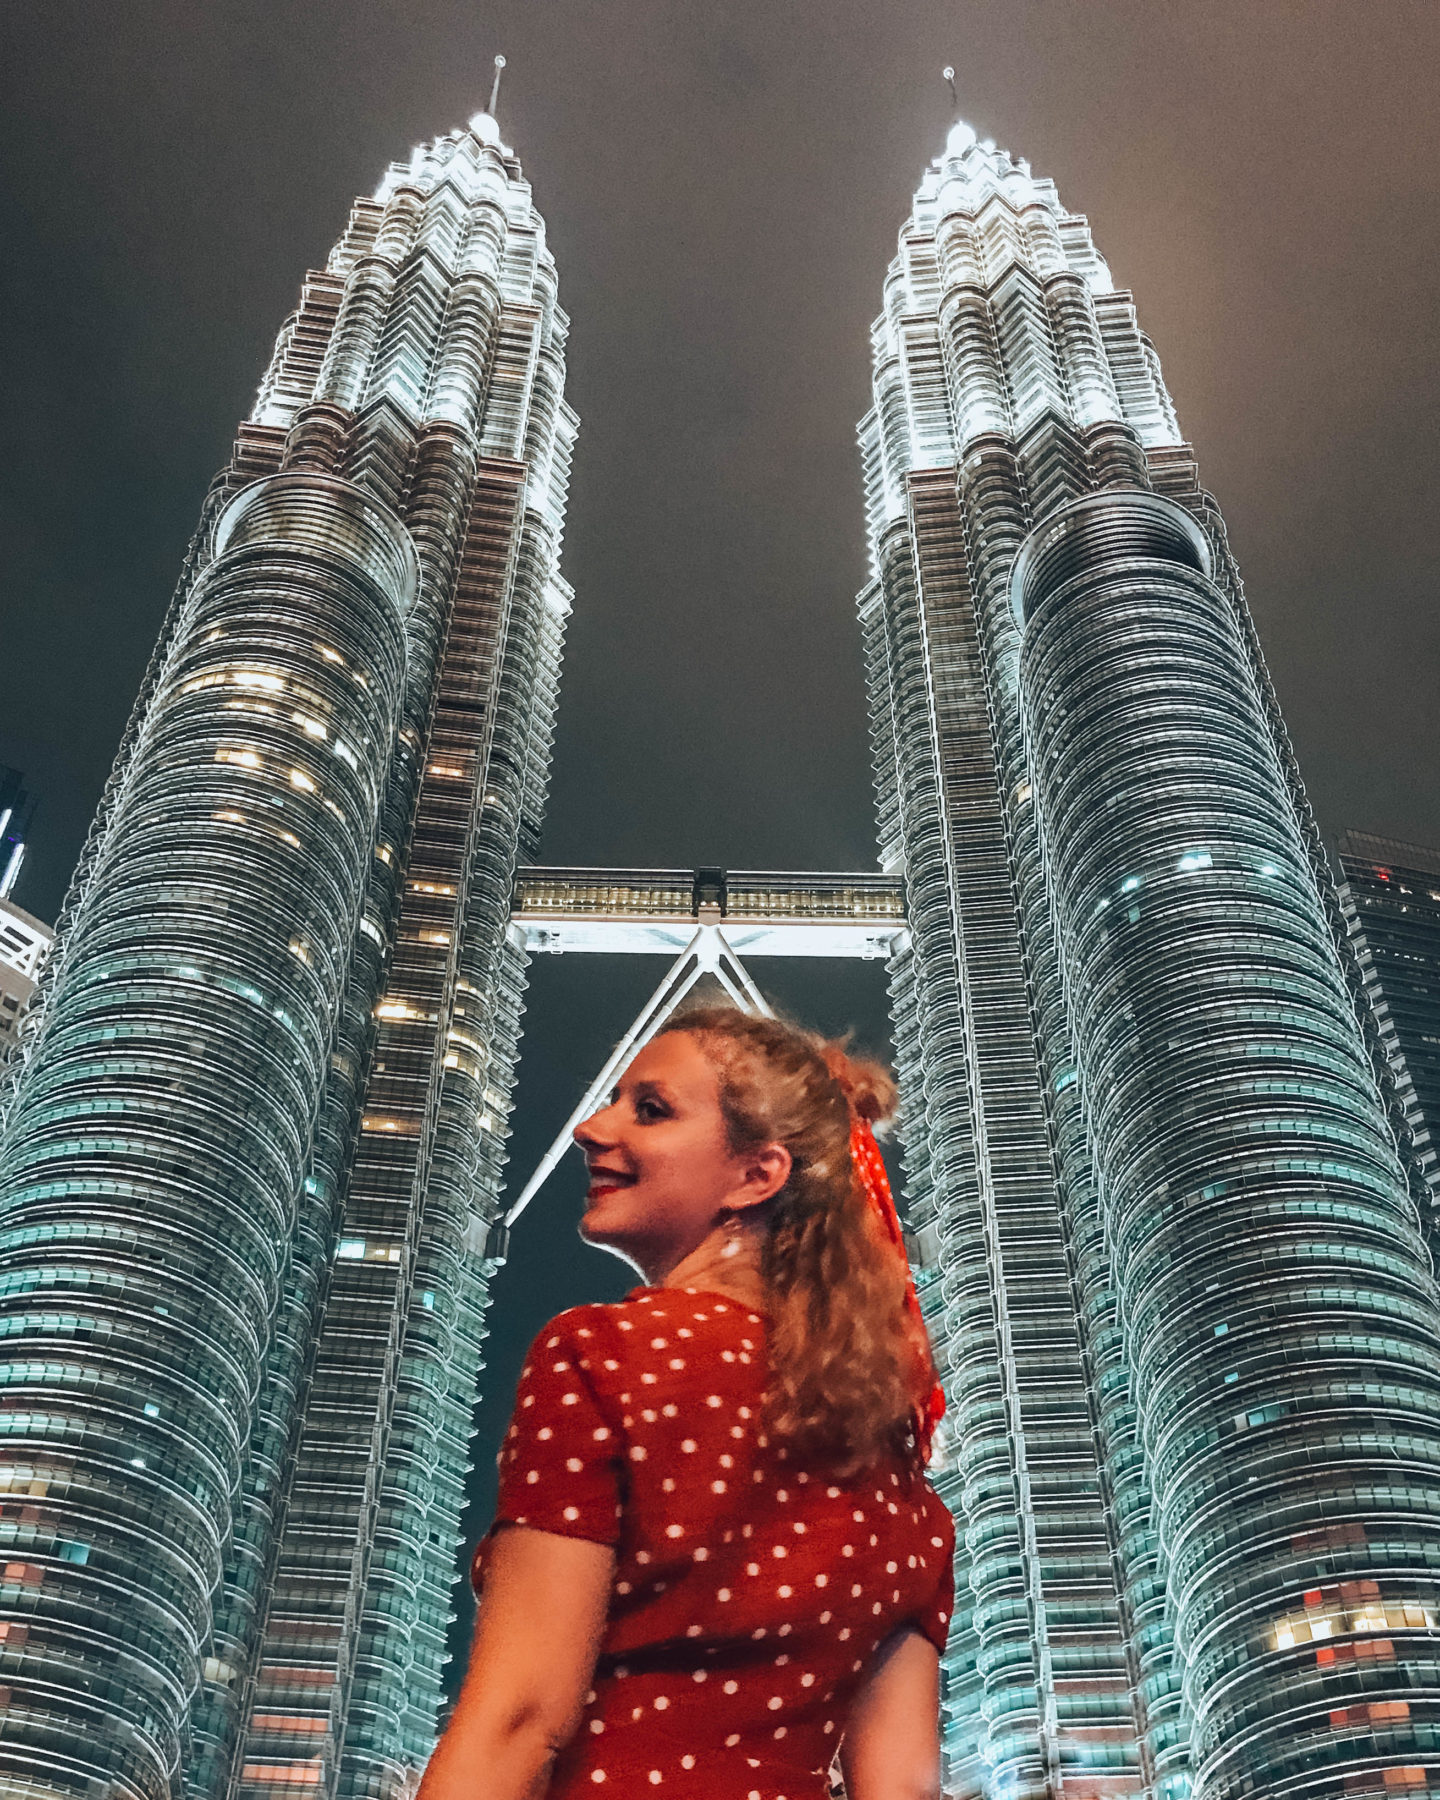 The Petronas Twin Towers by night in Kuala Lumpur